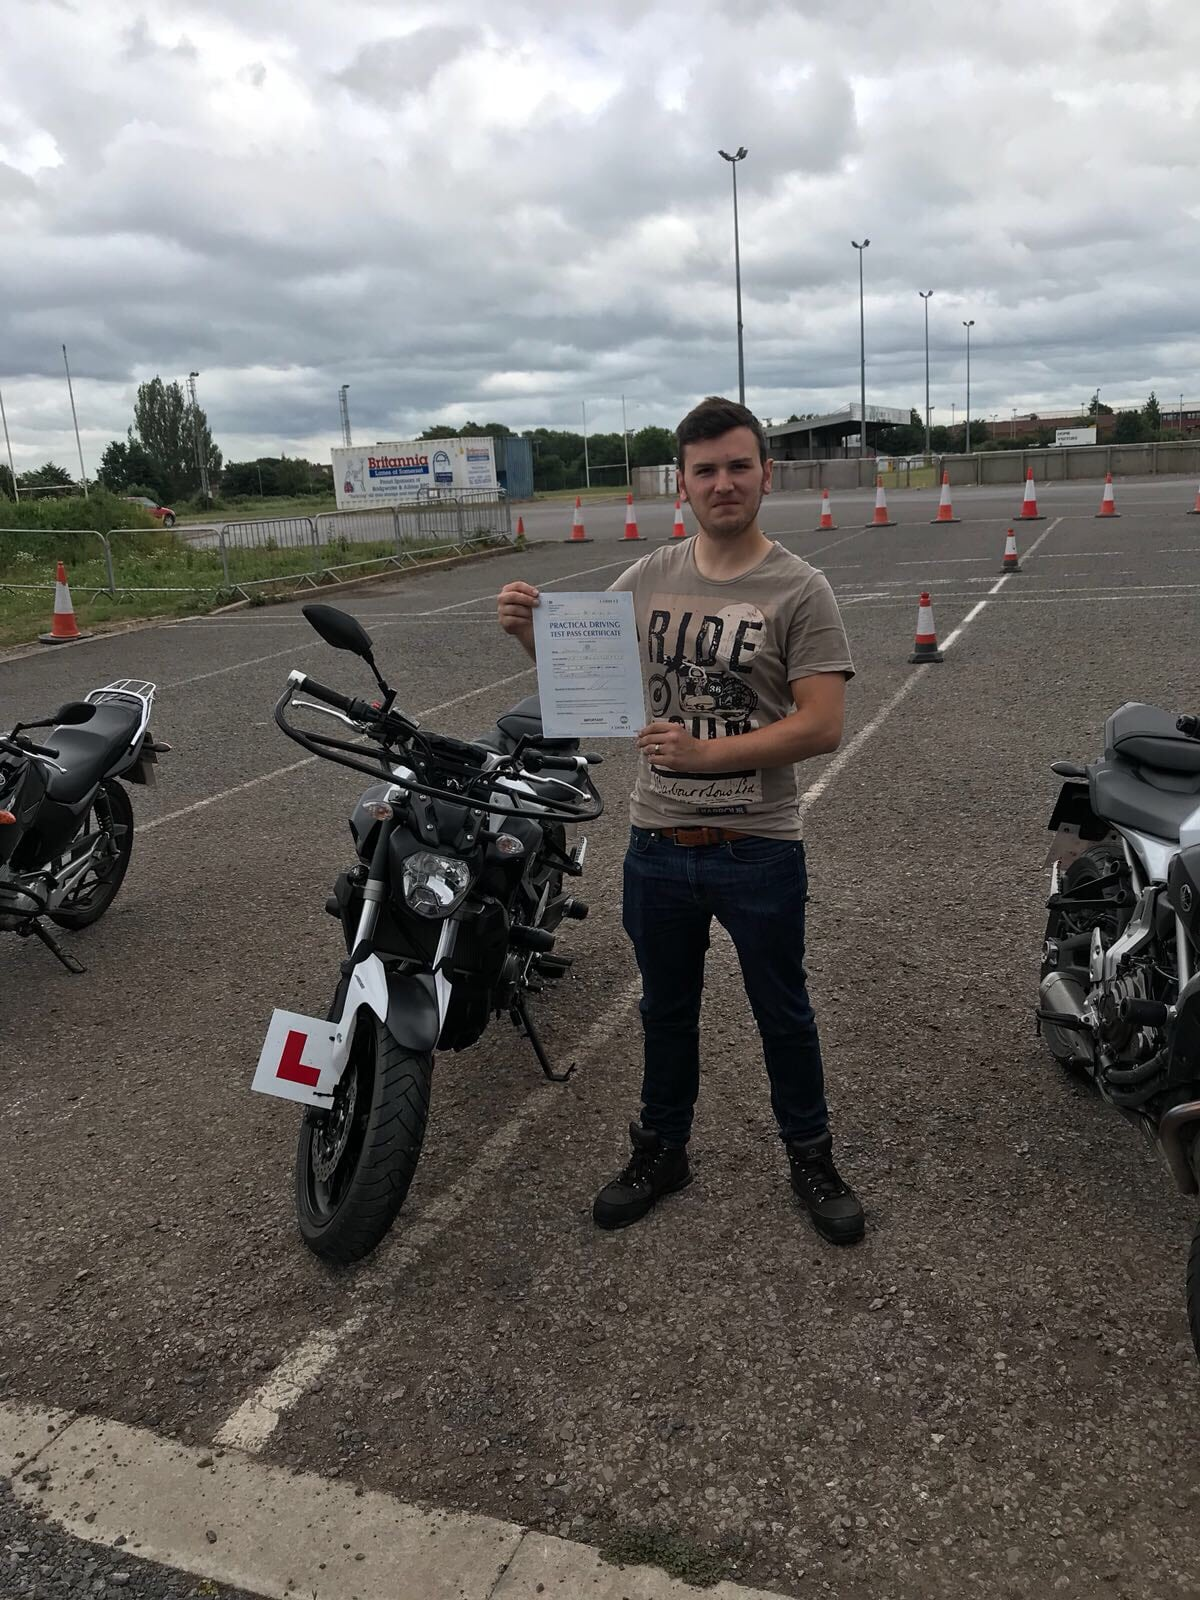 Sedgemoor Motorcycle Training success